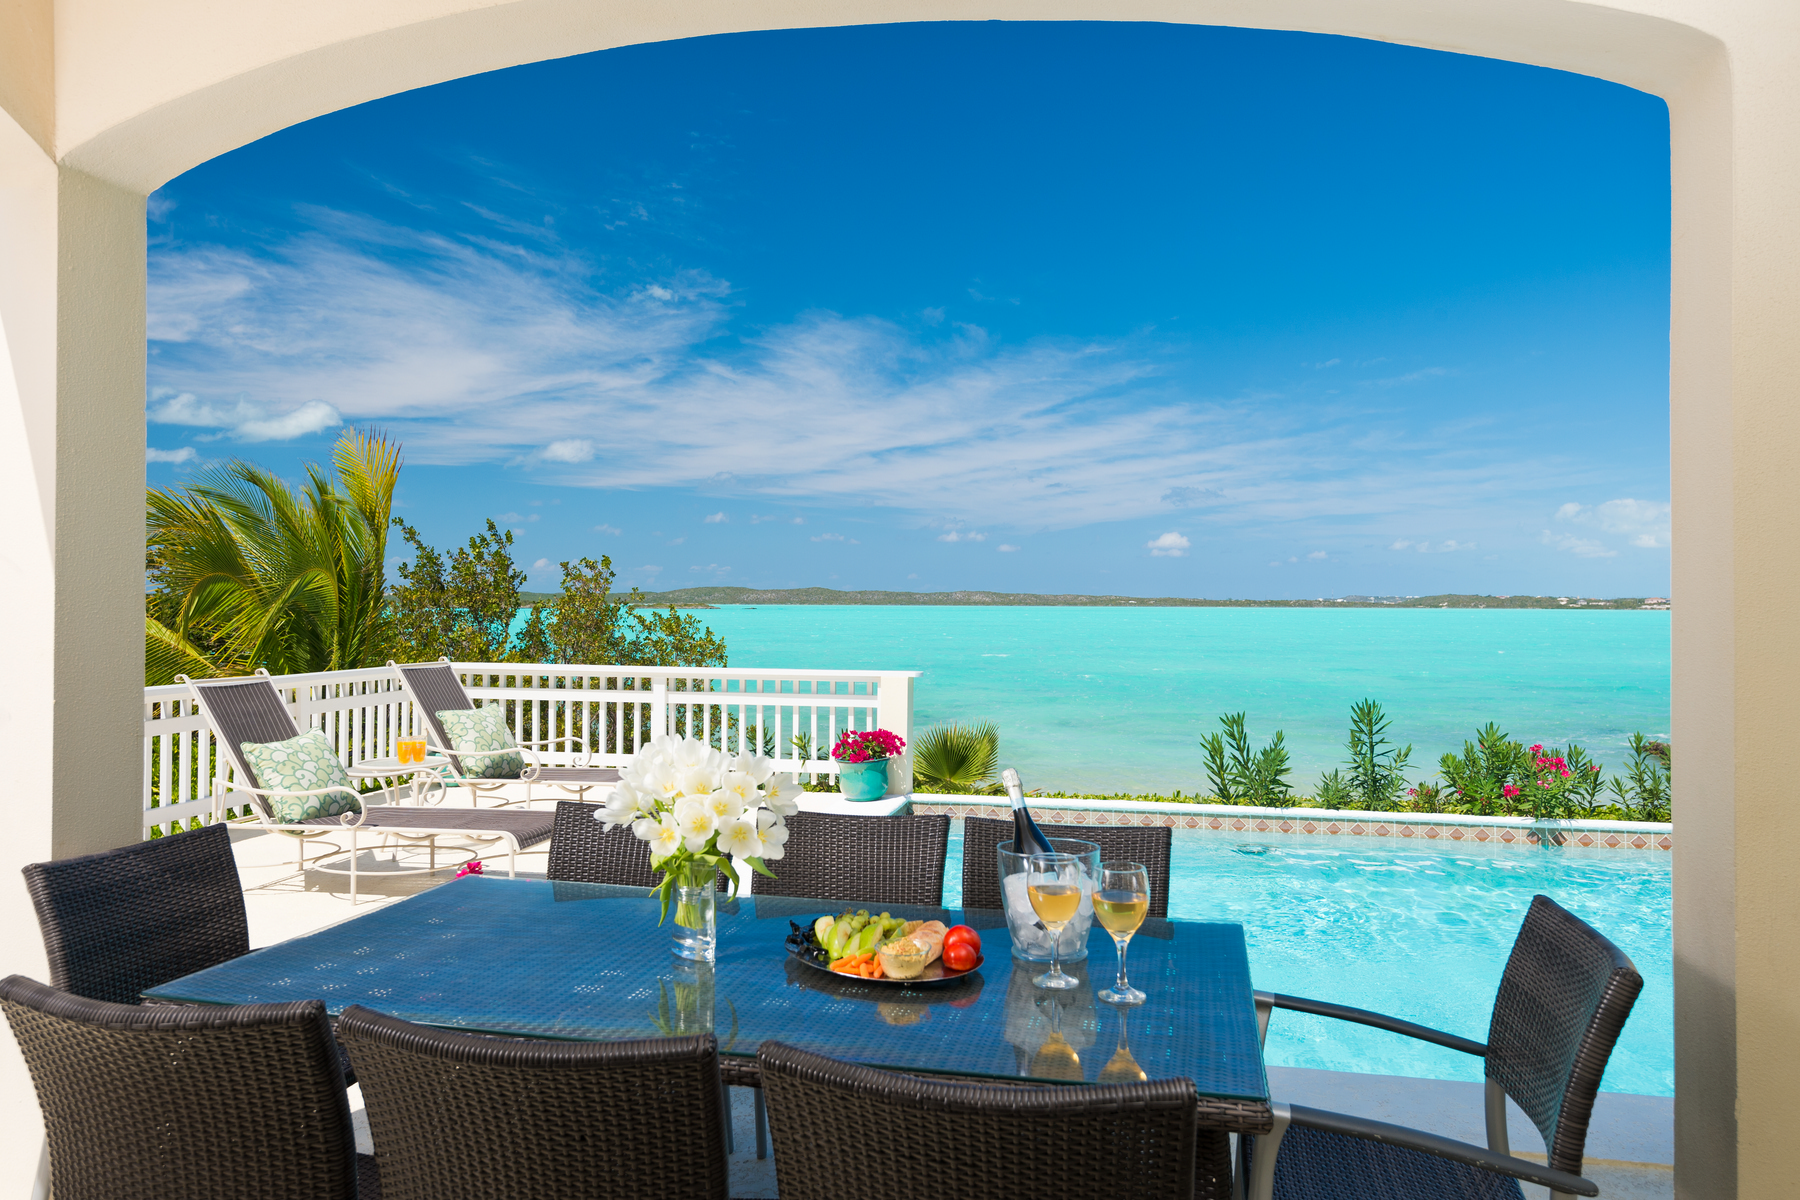 Single Family Home for Sale at BRIGHT IDEA VILLA Oceanfront Chalk Sound, Providenciales TKCA 1ZZ Turks And Caicos Islands